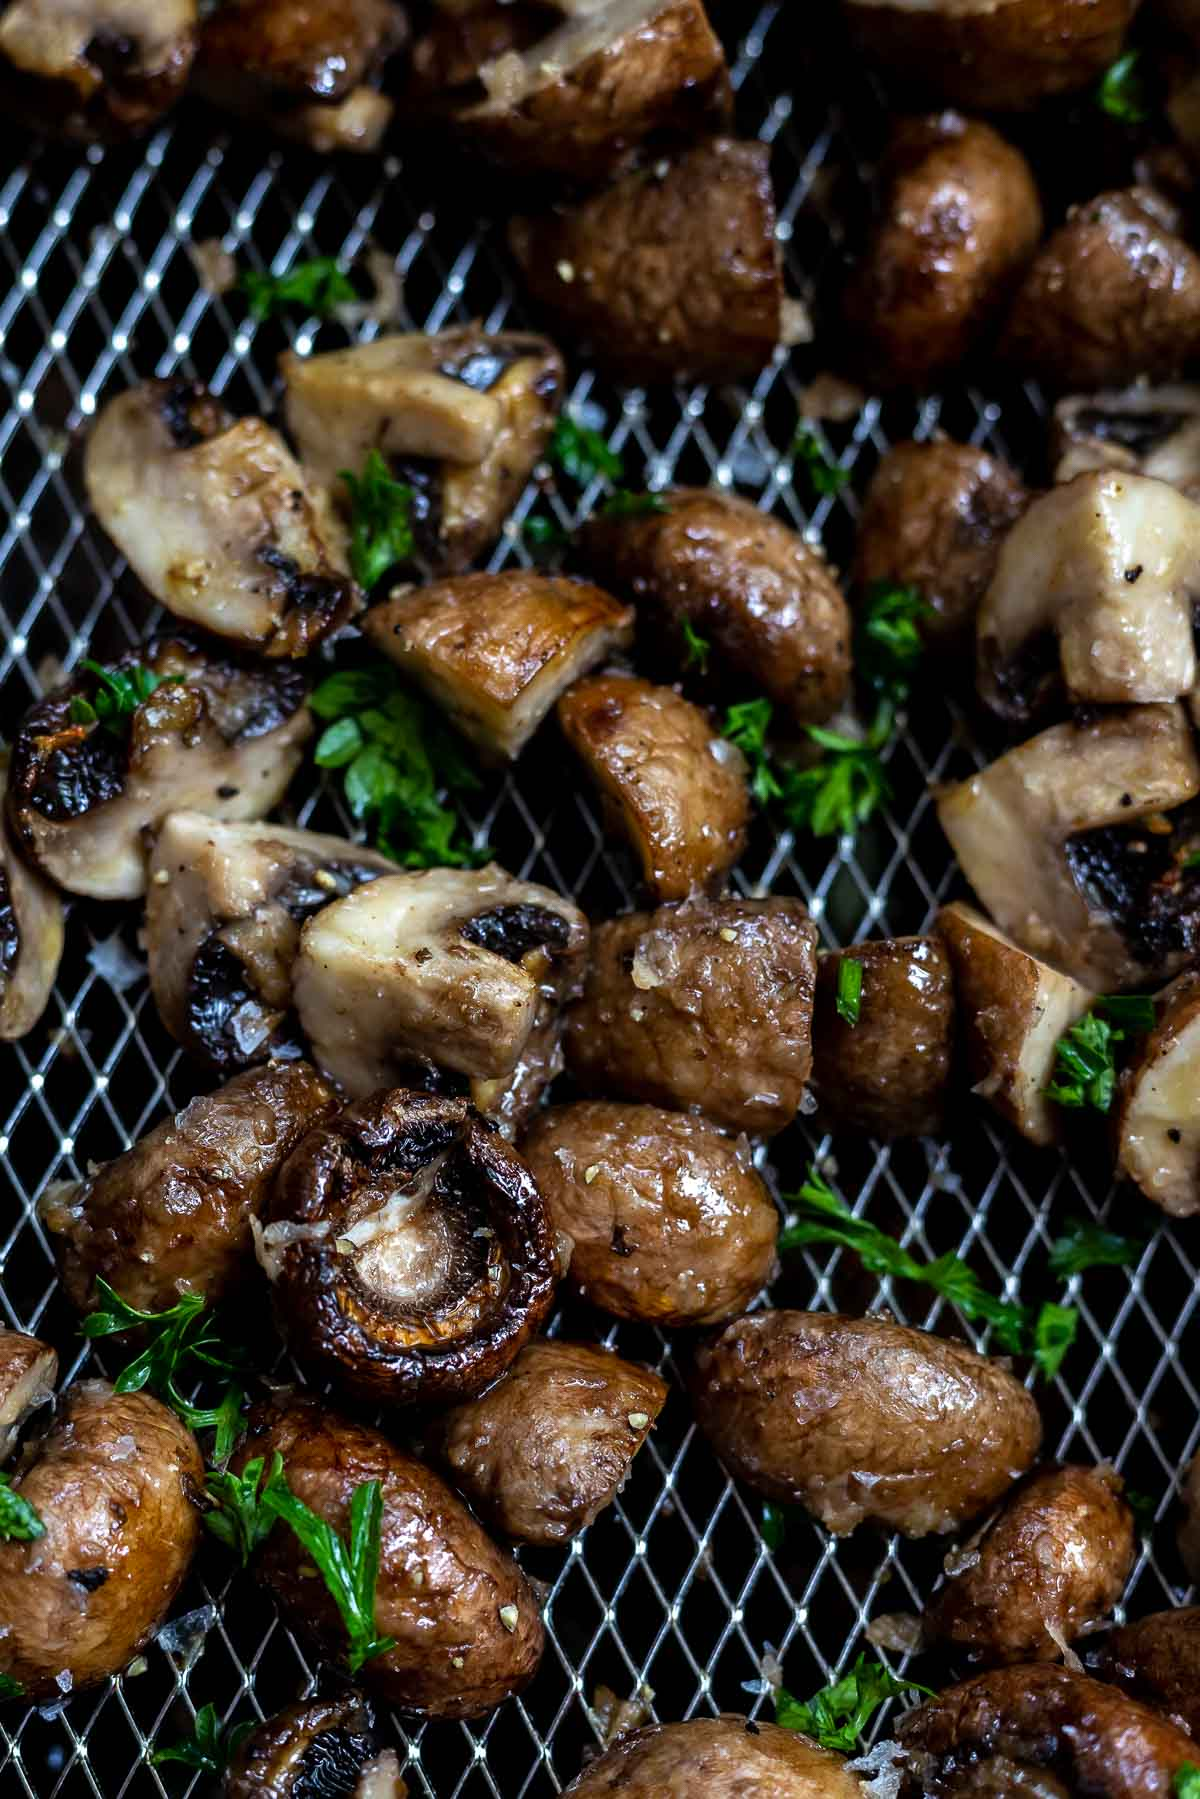 cooked mushrooms topped with parsley in air fryer basket